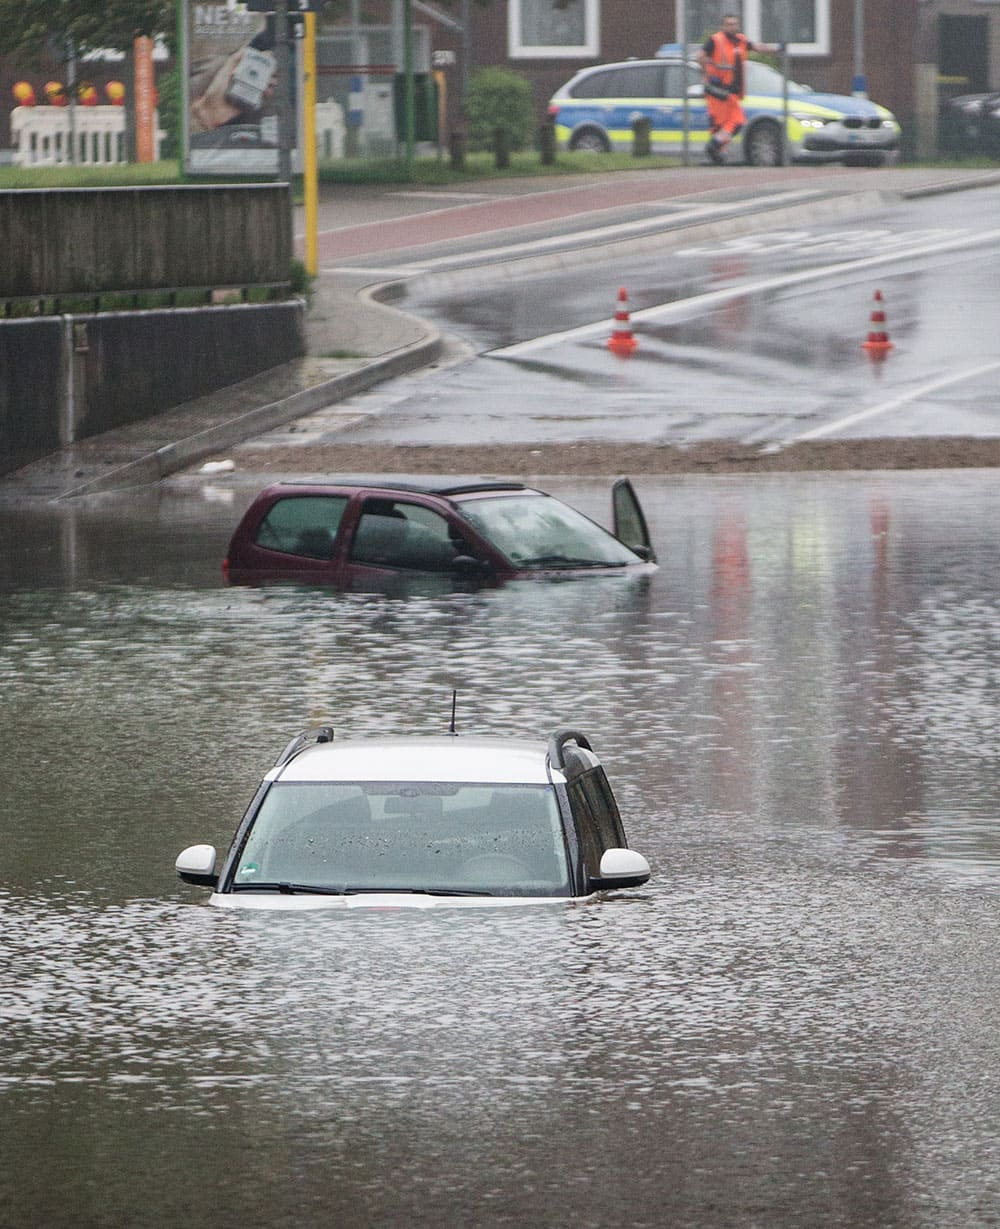 Cars got stuck in a flooded underpass in Oberhausen, Germany.